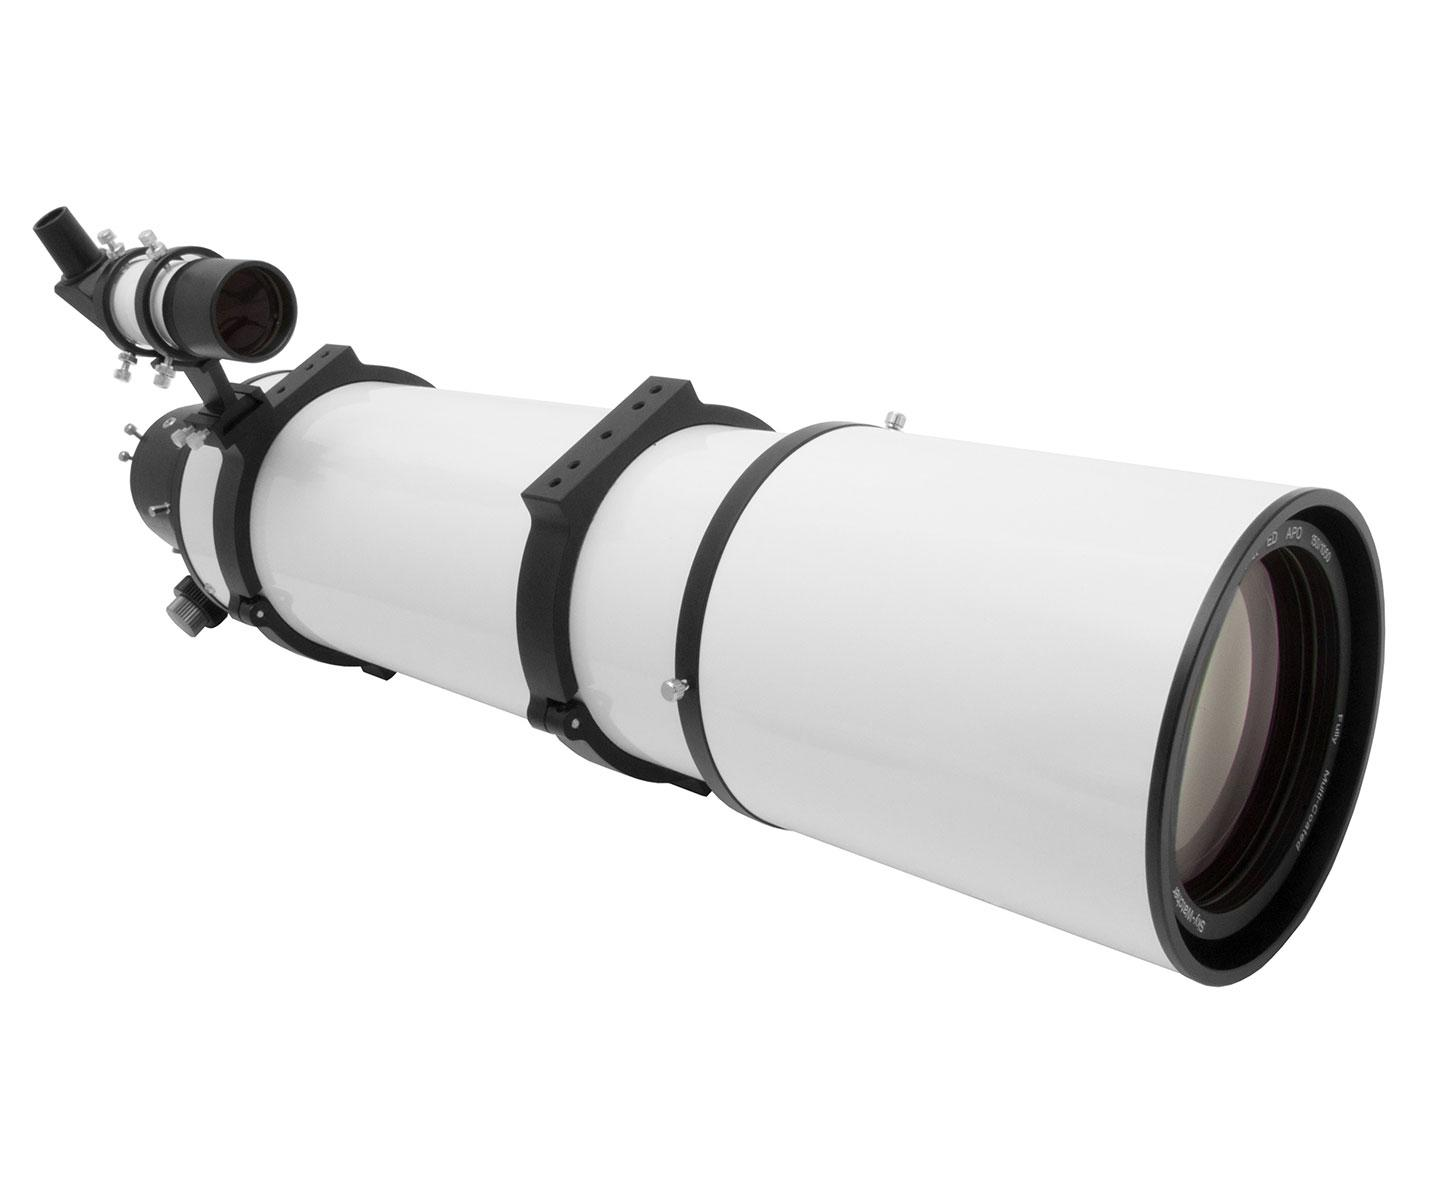 Tripletto Super APO FPL-53 TS Optics 150/1000mm f/6.6 con focheggiatore Feather Touch da 3.5""